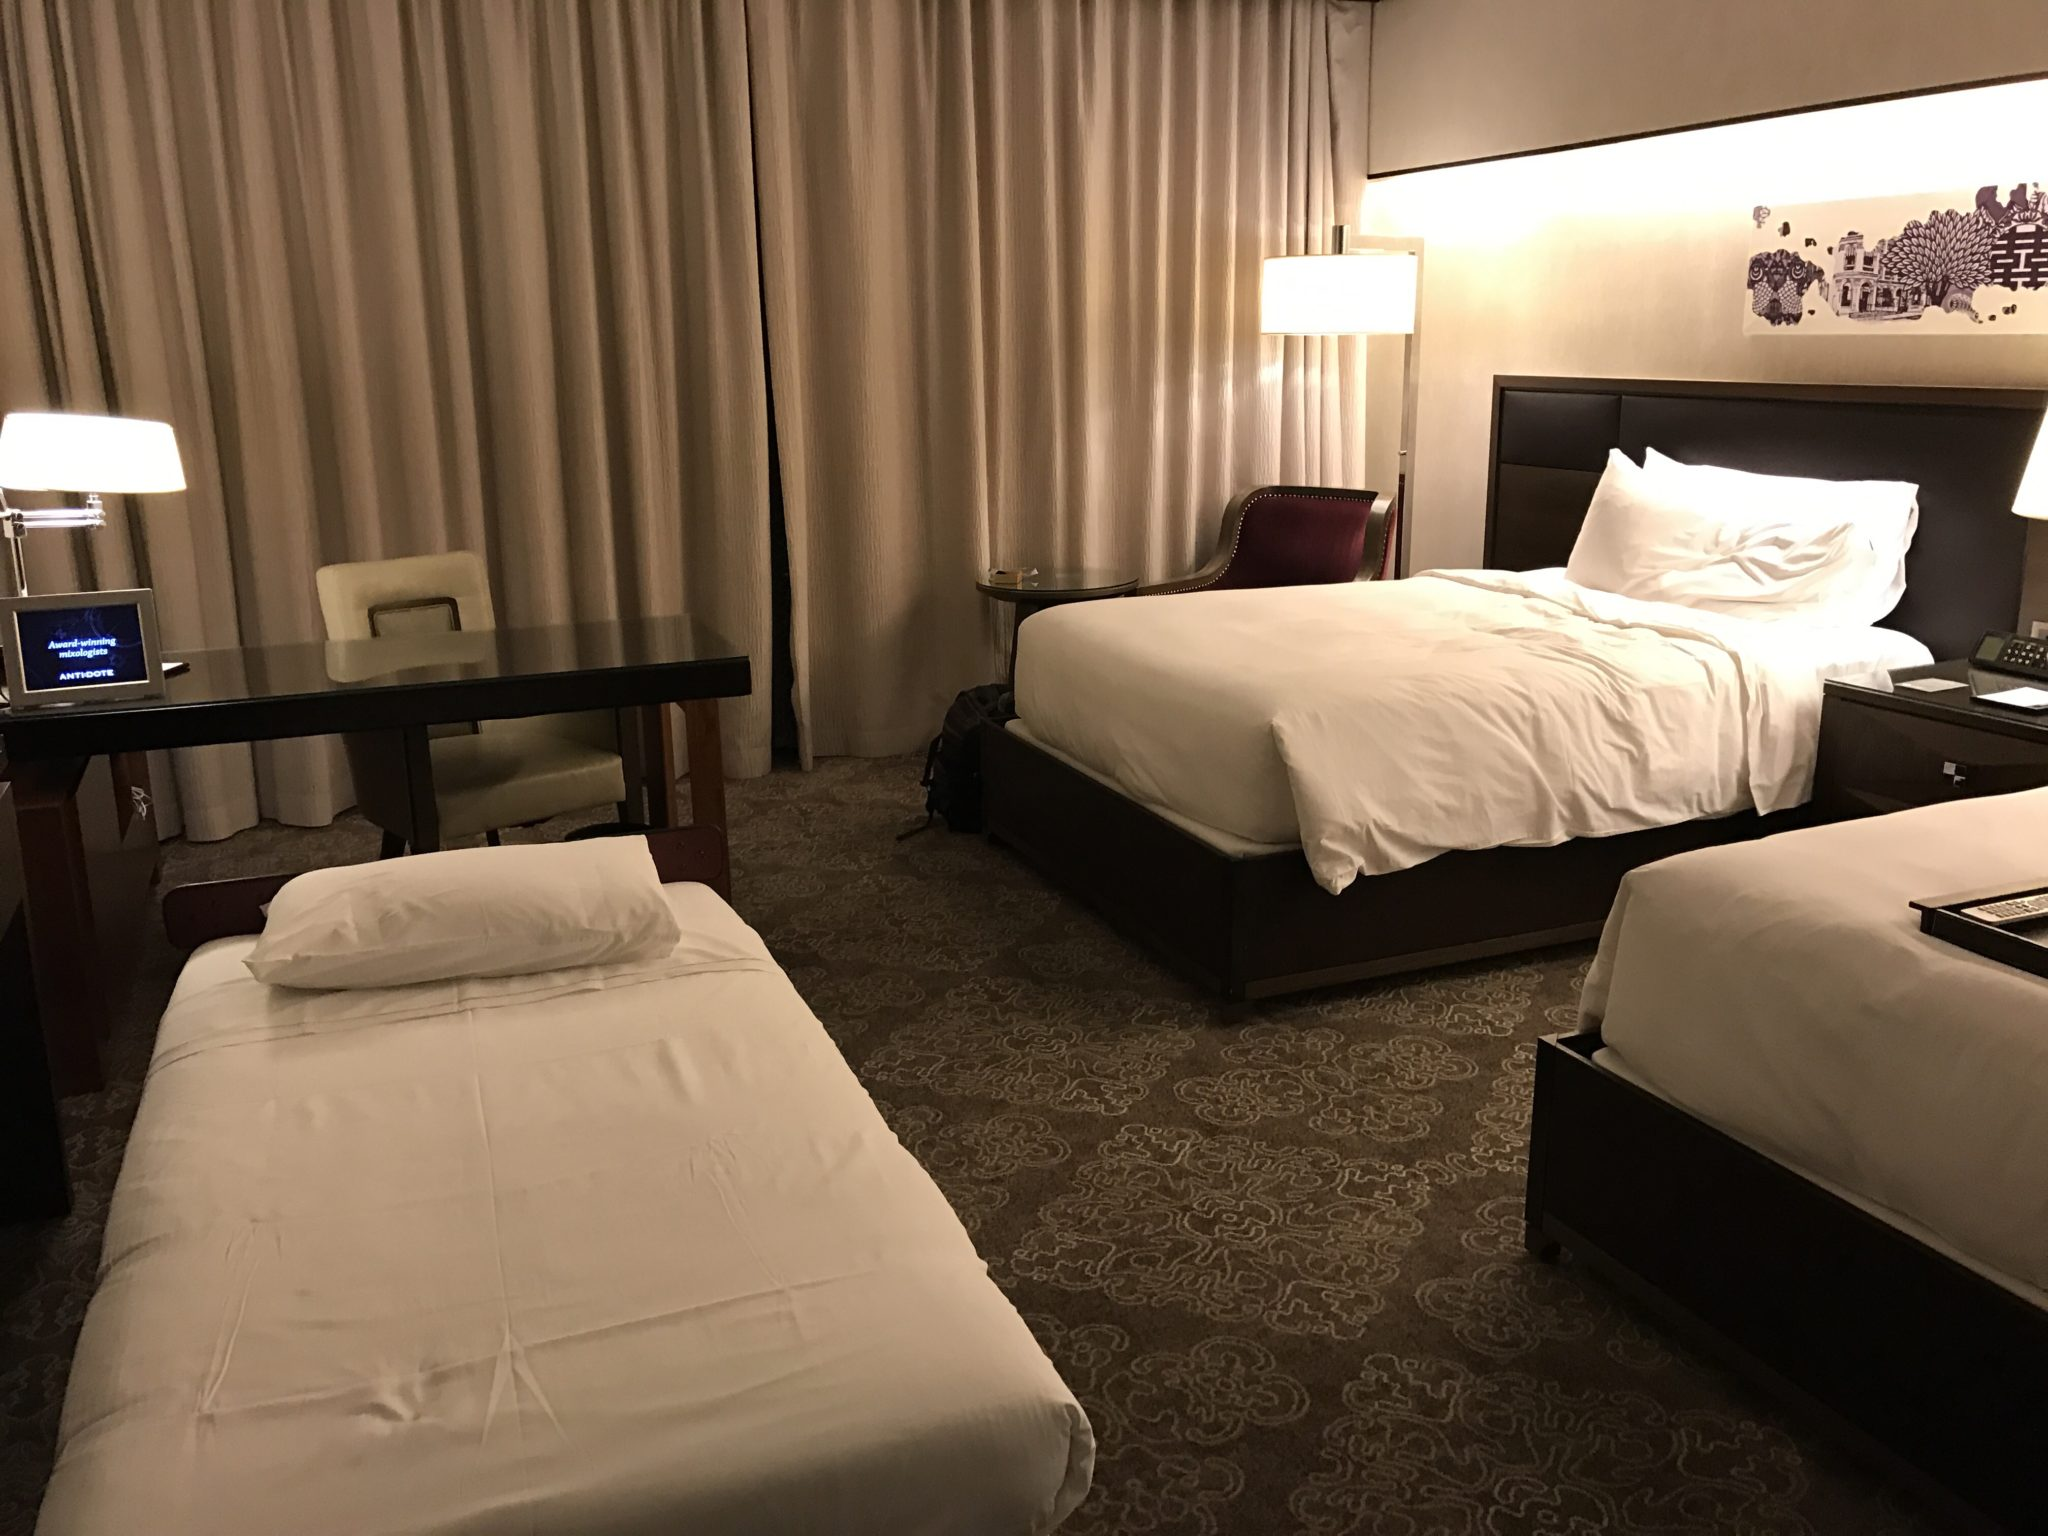 Fairmont Singapore has plenty of room for a rollaway